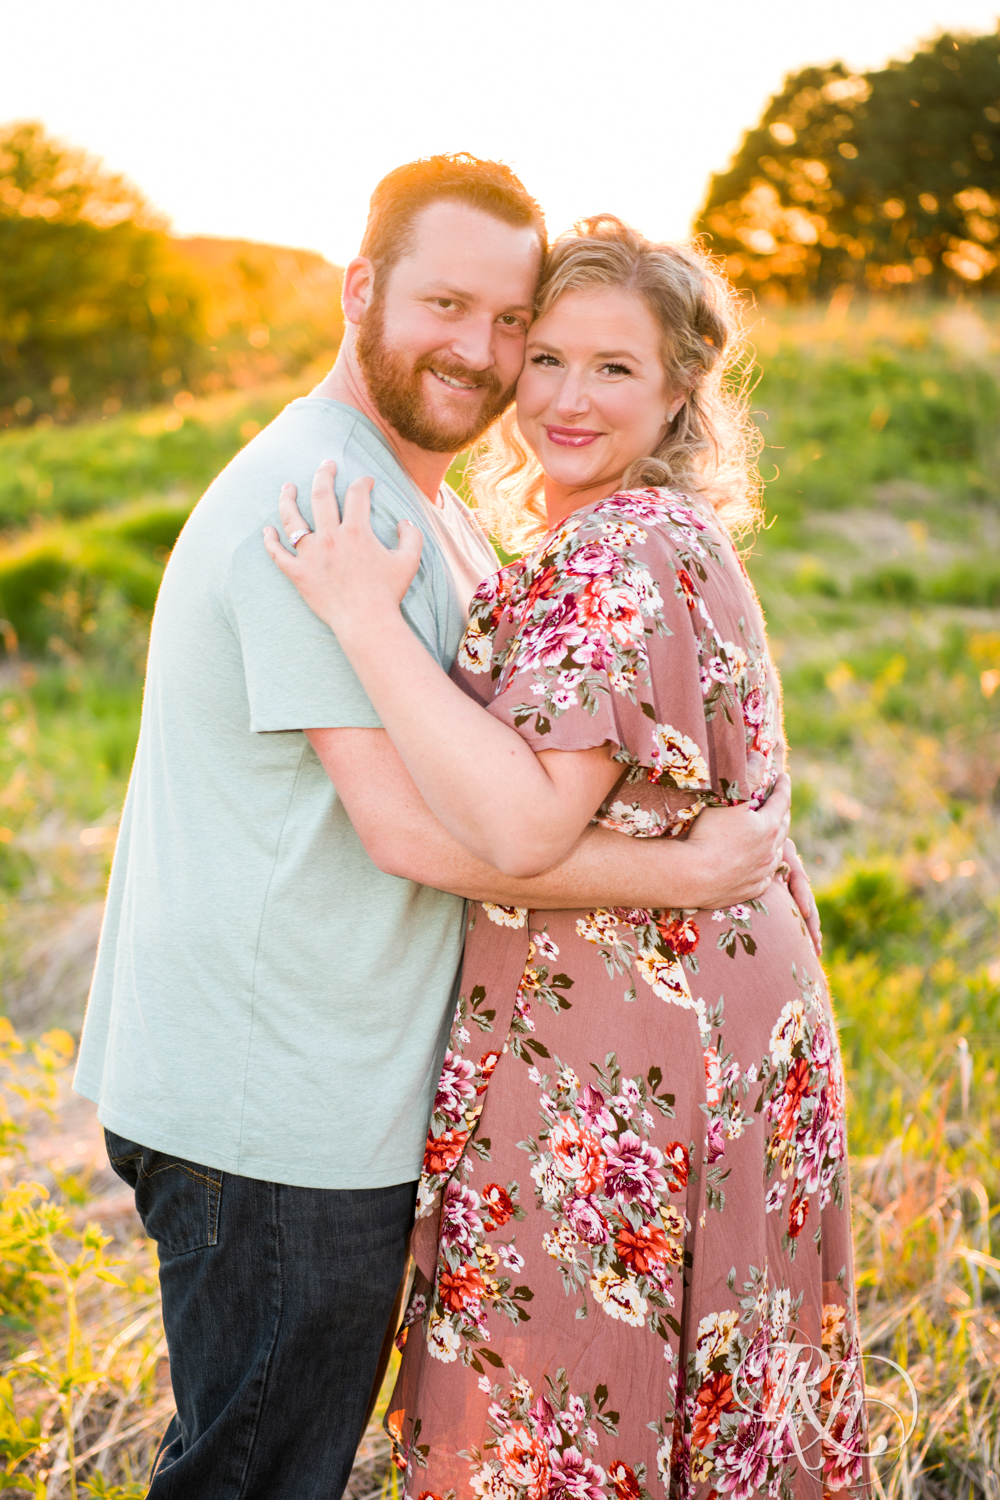 Constance & Josh - Minnesota Engagement Photography - Lebanon Hills Regional Park - RKH Images - Blog (17 of 18).jpg